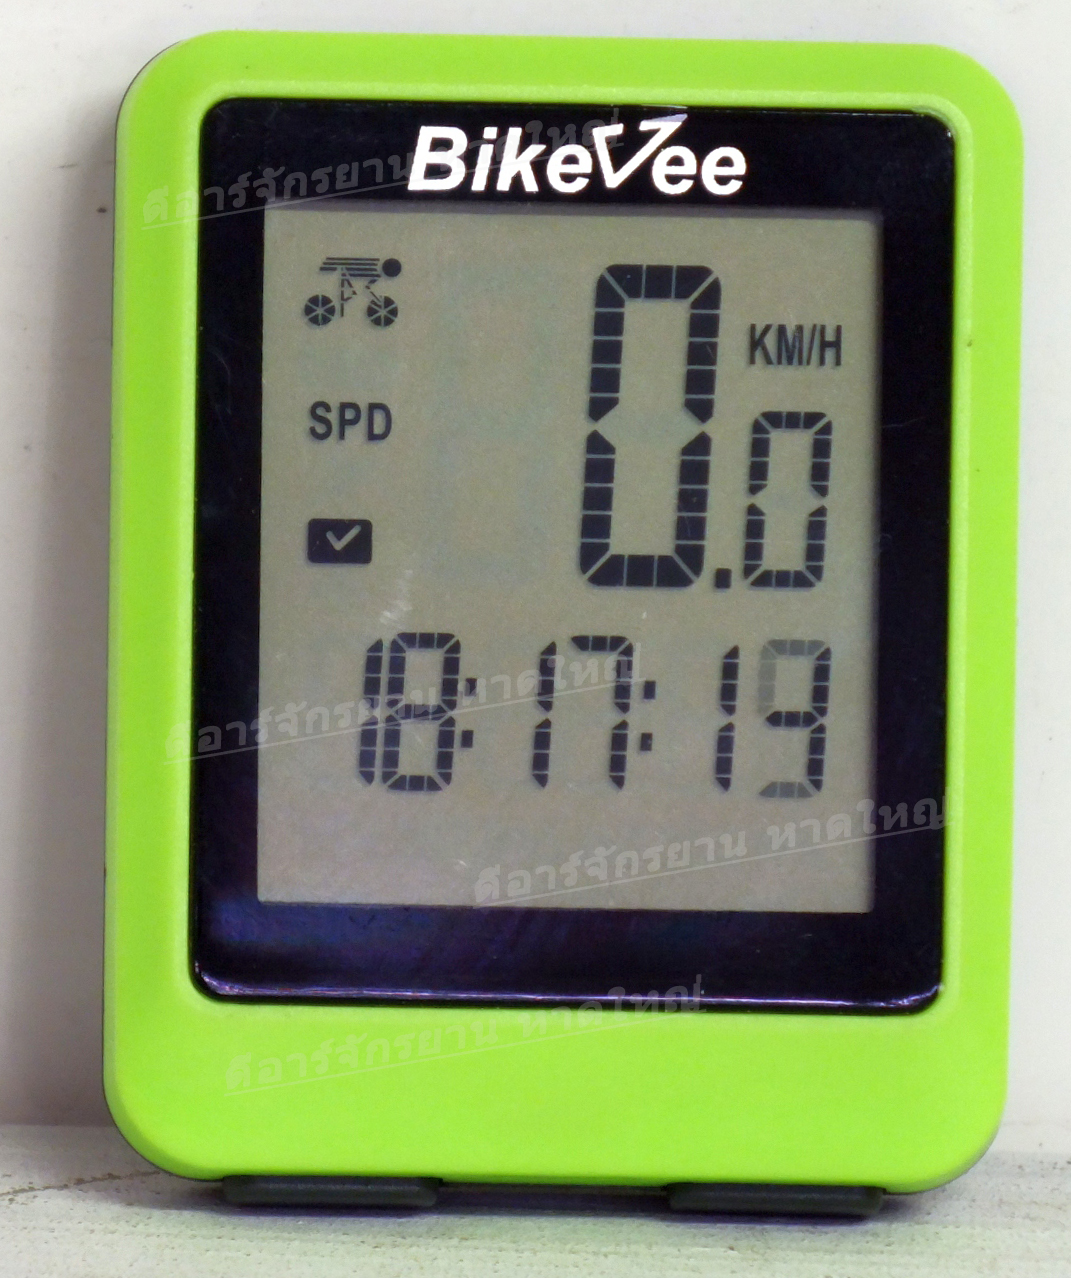 ไมล์ BikeVee  Wireless